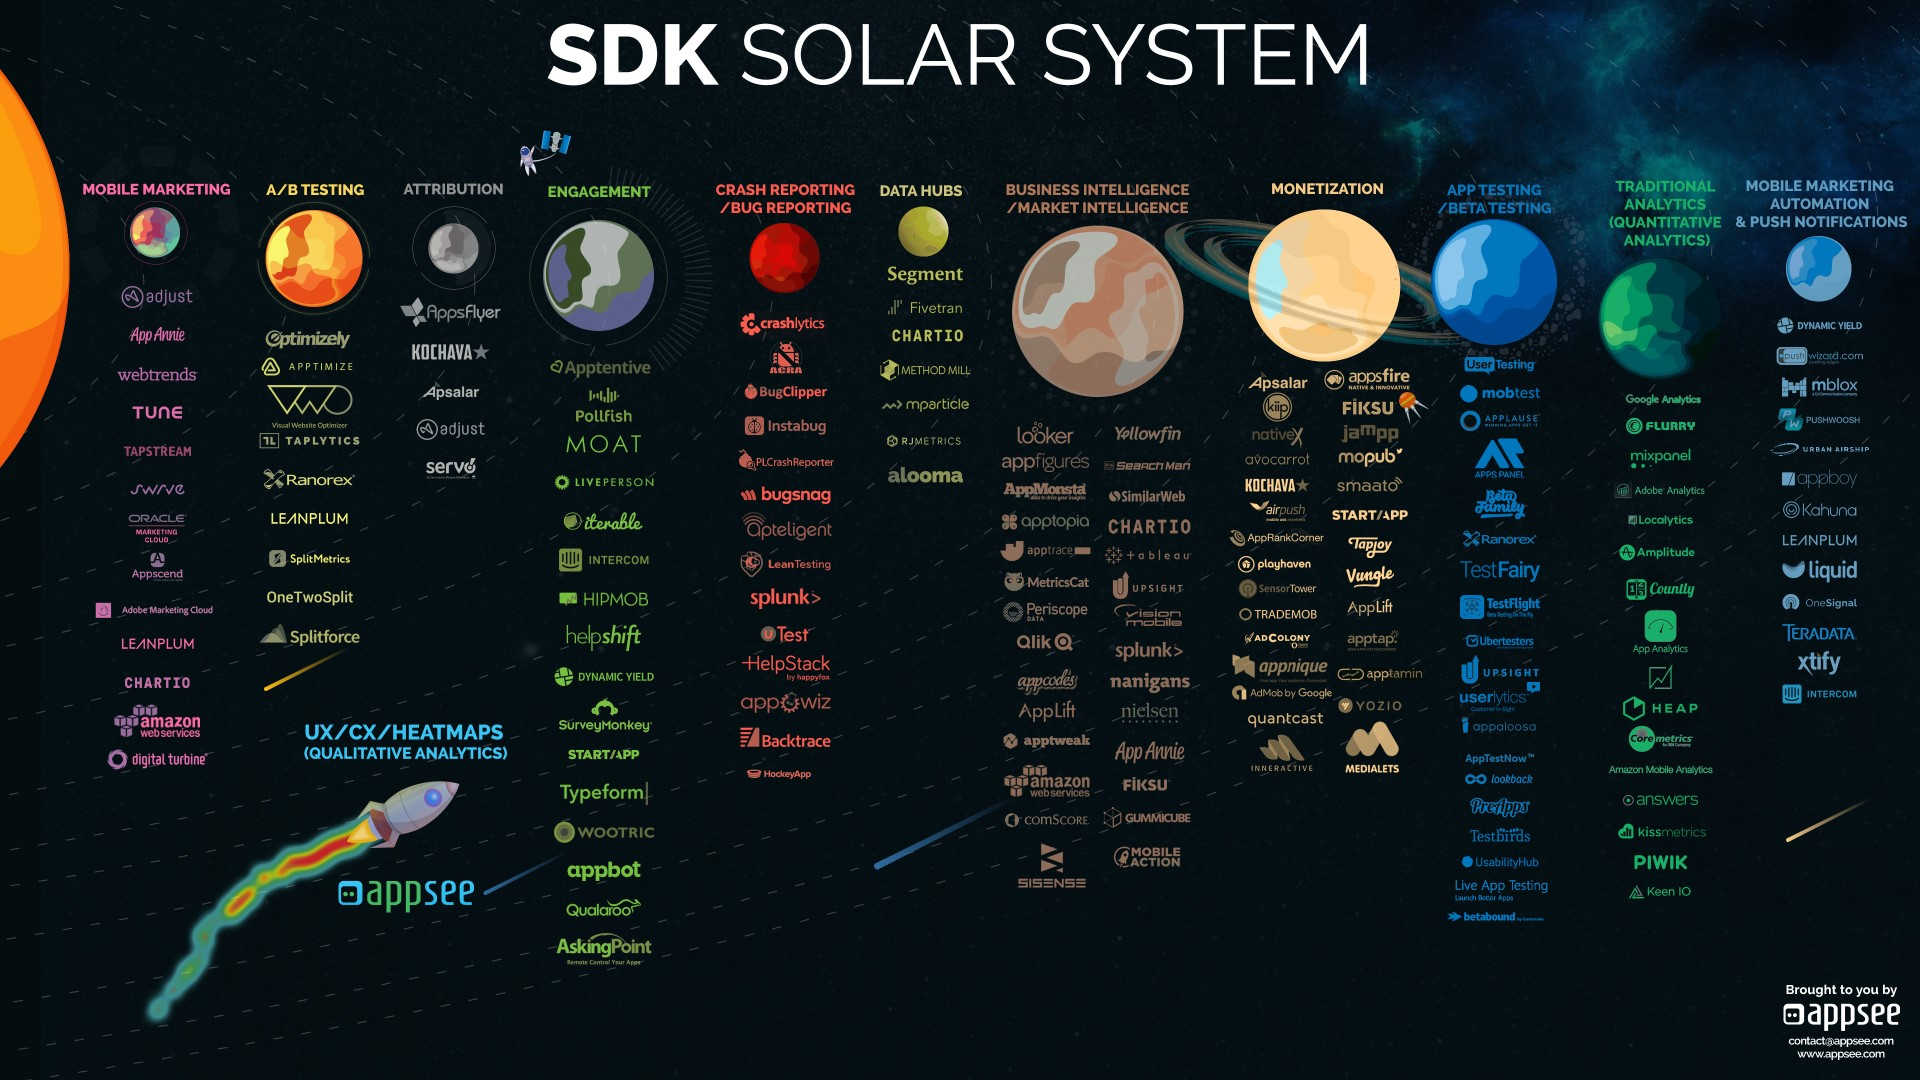 essay on the solar system This essay was developed for the amnh online course the solar system  the solar system is a part of seminars on science, a program of online graduate-level professional development courses for k-12 educators.